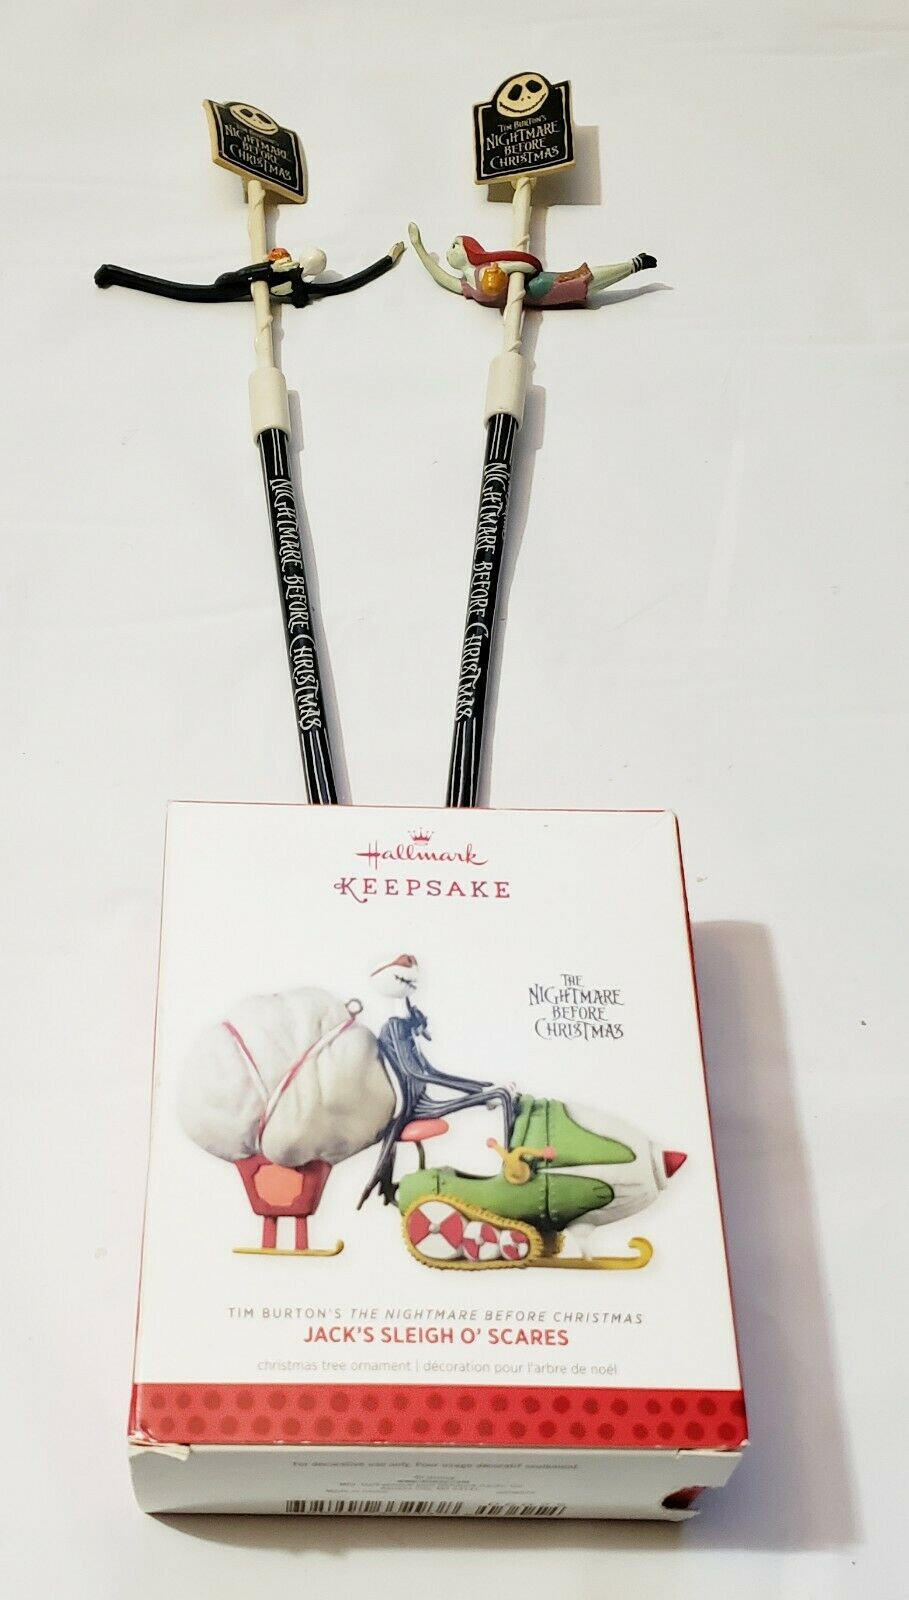 Hallmark Nightmare Before Christmas Ornaments.Hallmark The Nightmare Before Christmas Jack S Sleigh O Scares Ornament Seekers